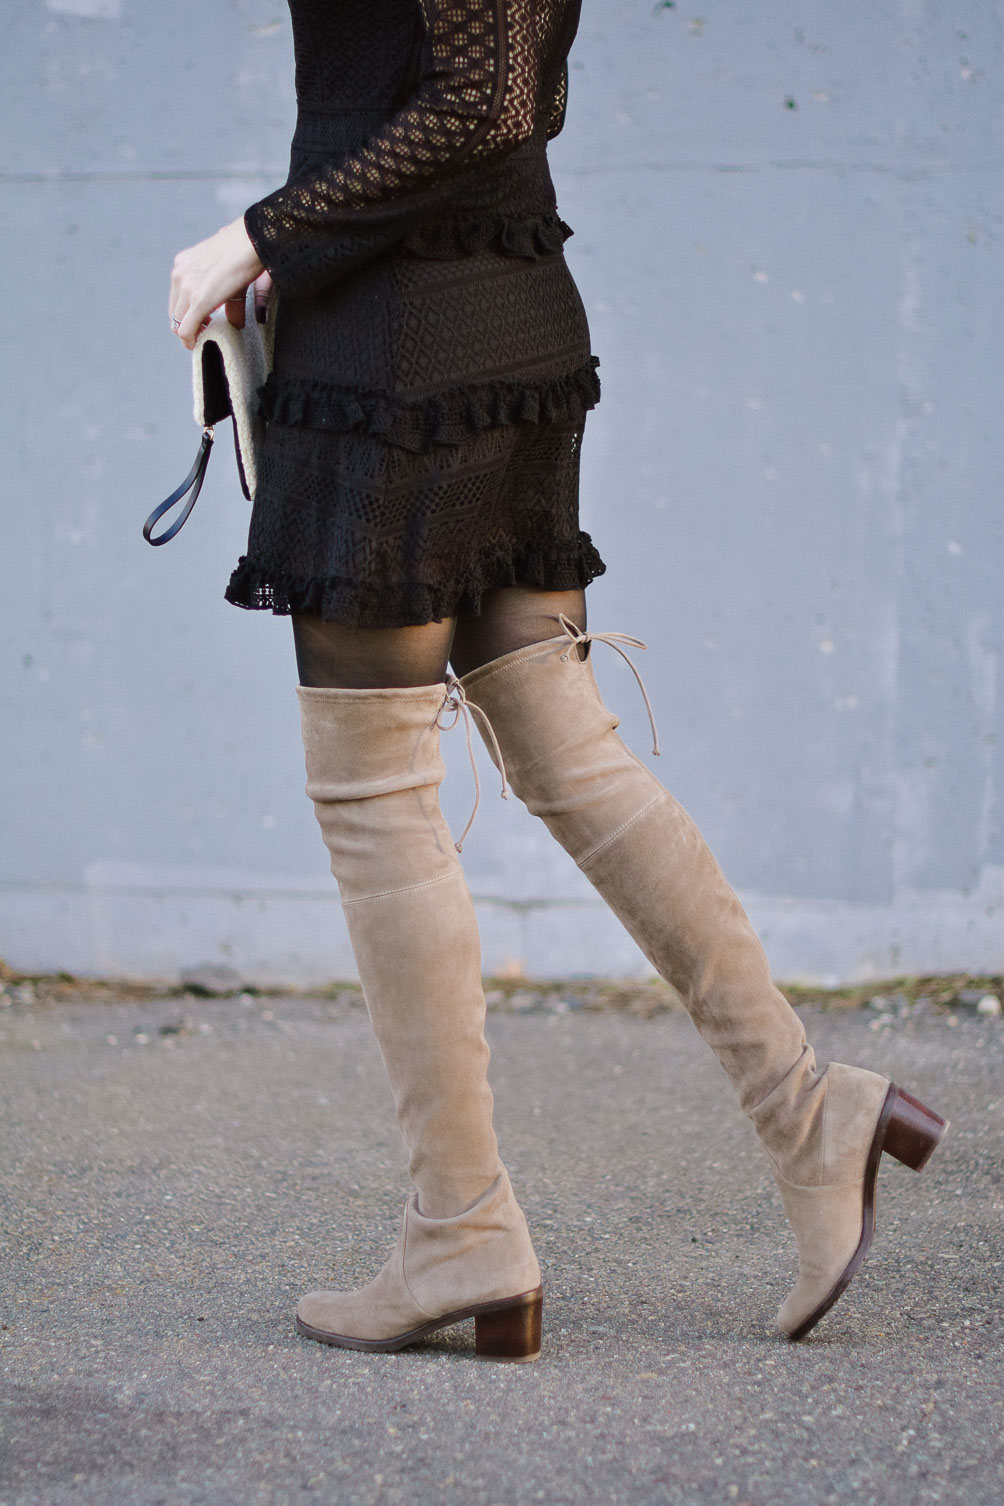 winter outfit inspiration with black lace ruffle dress and suede over the knee boots